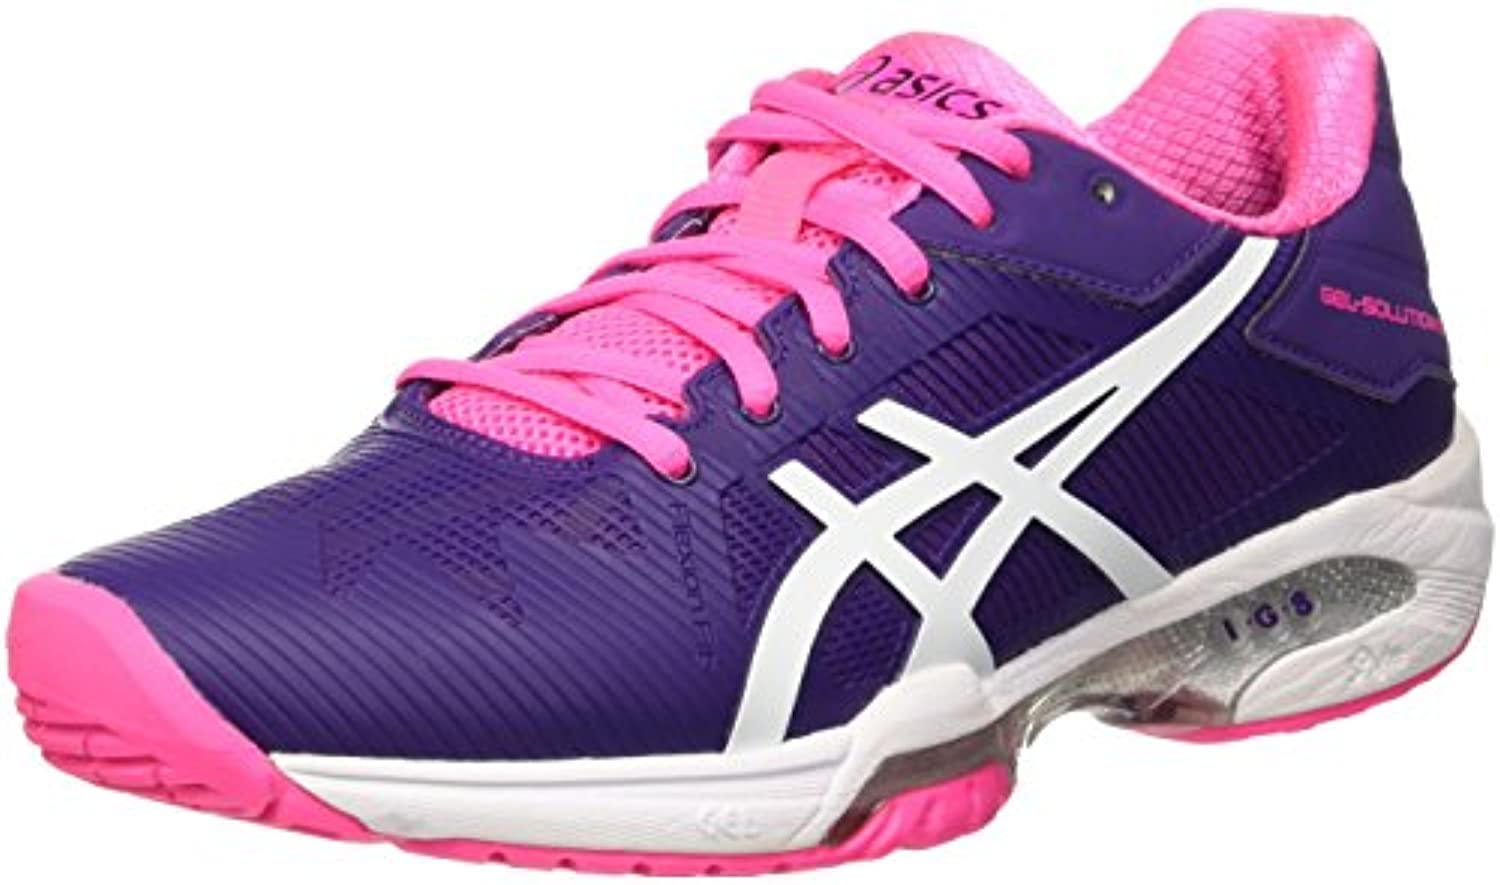 Asics Gel-Solution Speed 3 W, Zapatillas de Tenis para Mujer